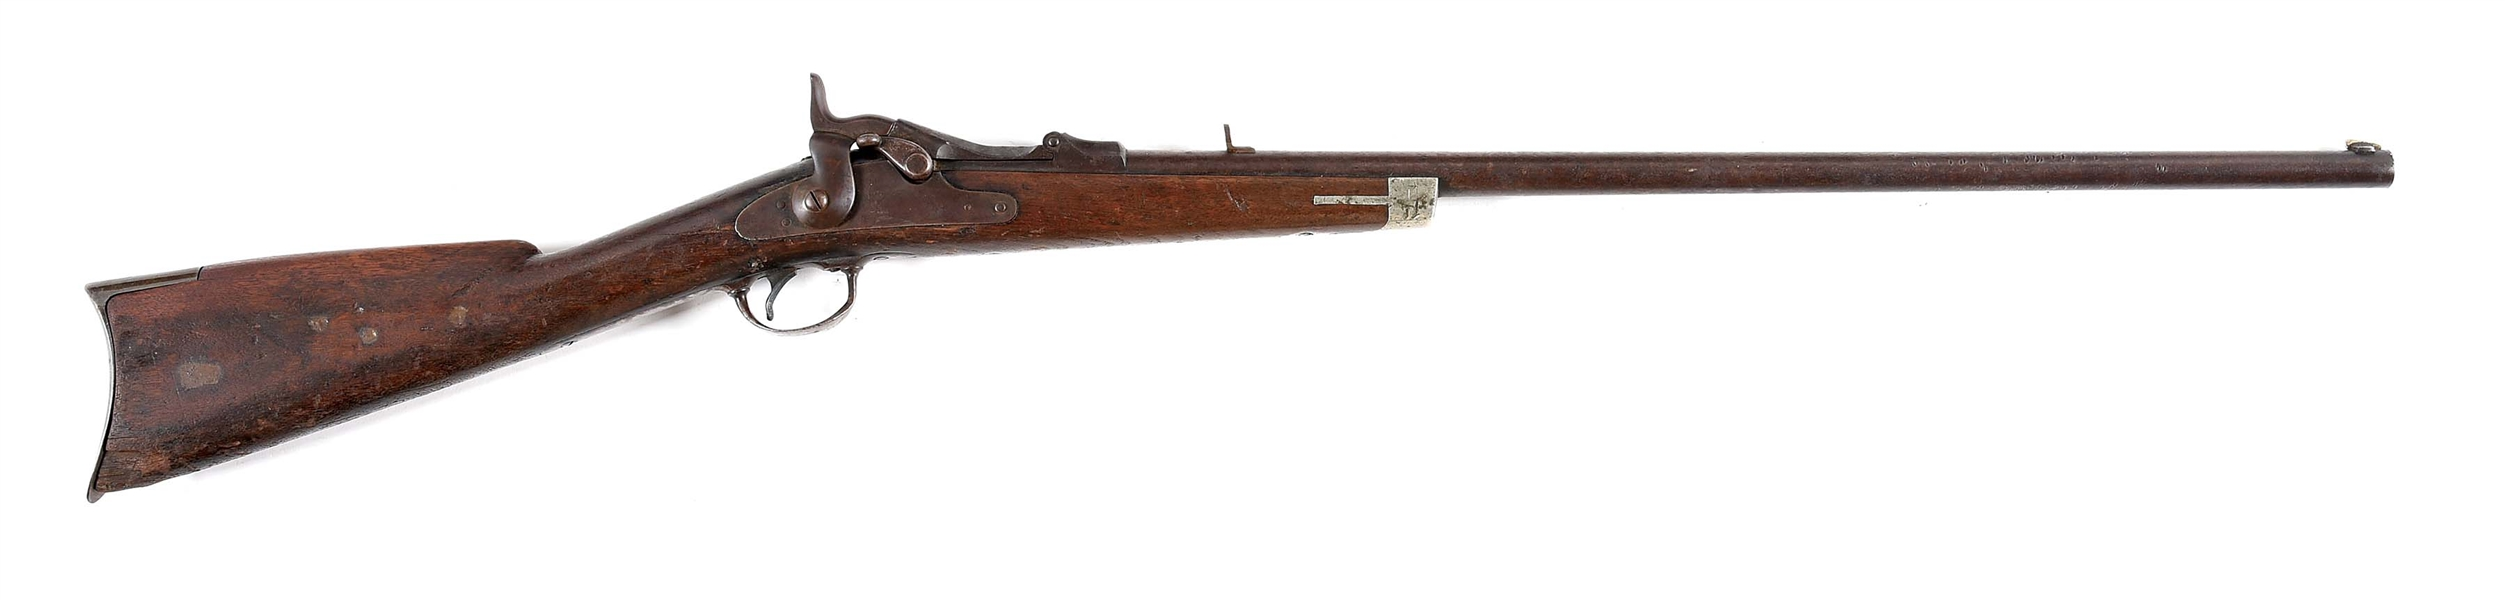 (A) CLASSIC ROCKY MOUNTAIN TRAPDOOR SPORTING RIFLE.